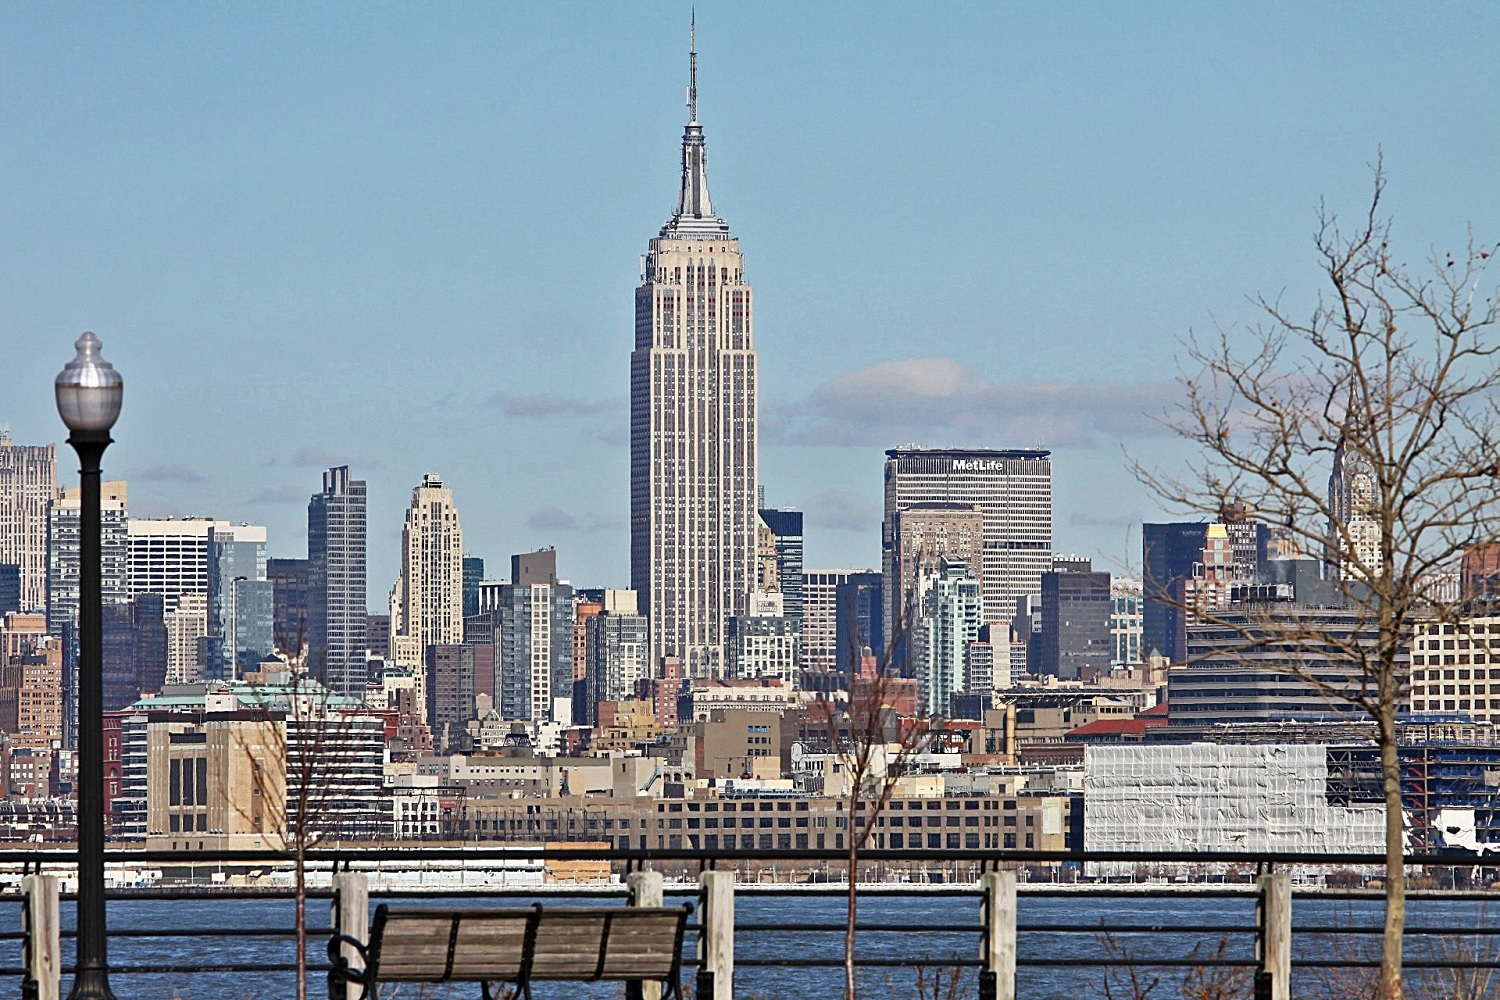 Empire State Building owner Tony Malkin said landlords will regret the day they leased to office coworking tenants. Photo: CCO Public Domain